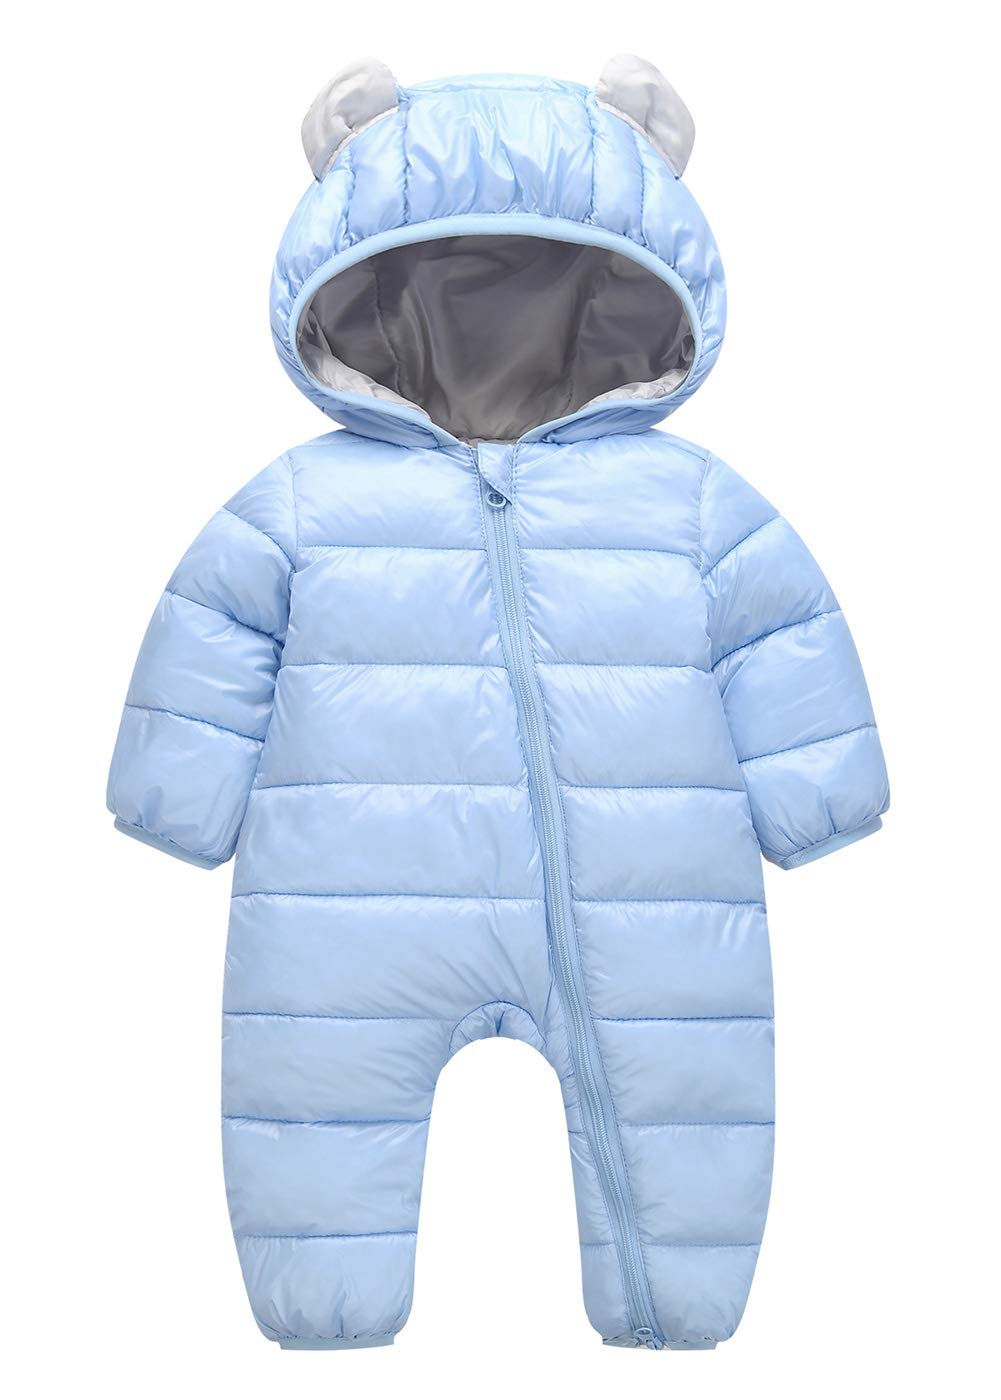 100% Down Cotton Baby Romper Baby Winter Coat Zipper Long Sleeve Cute Baby Snowsuit Blue 12-18 Months Happy Cherry